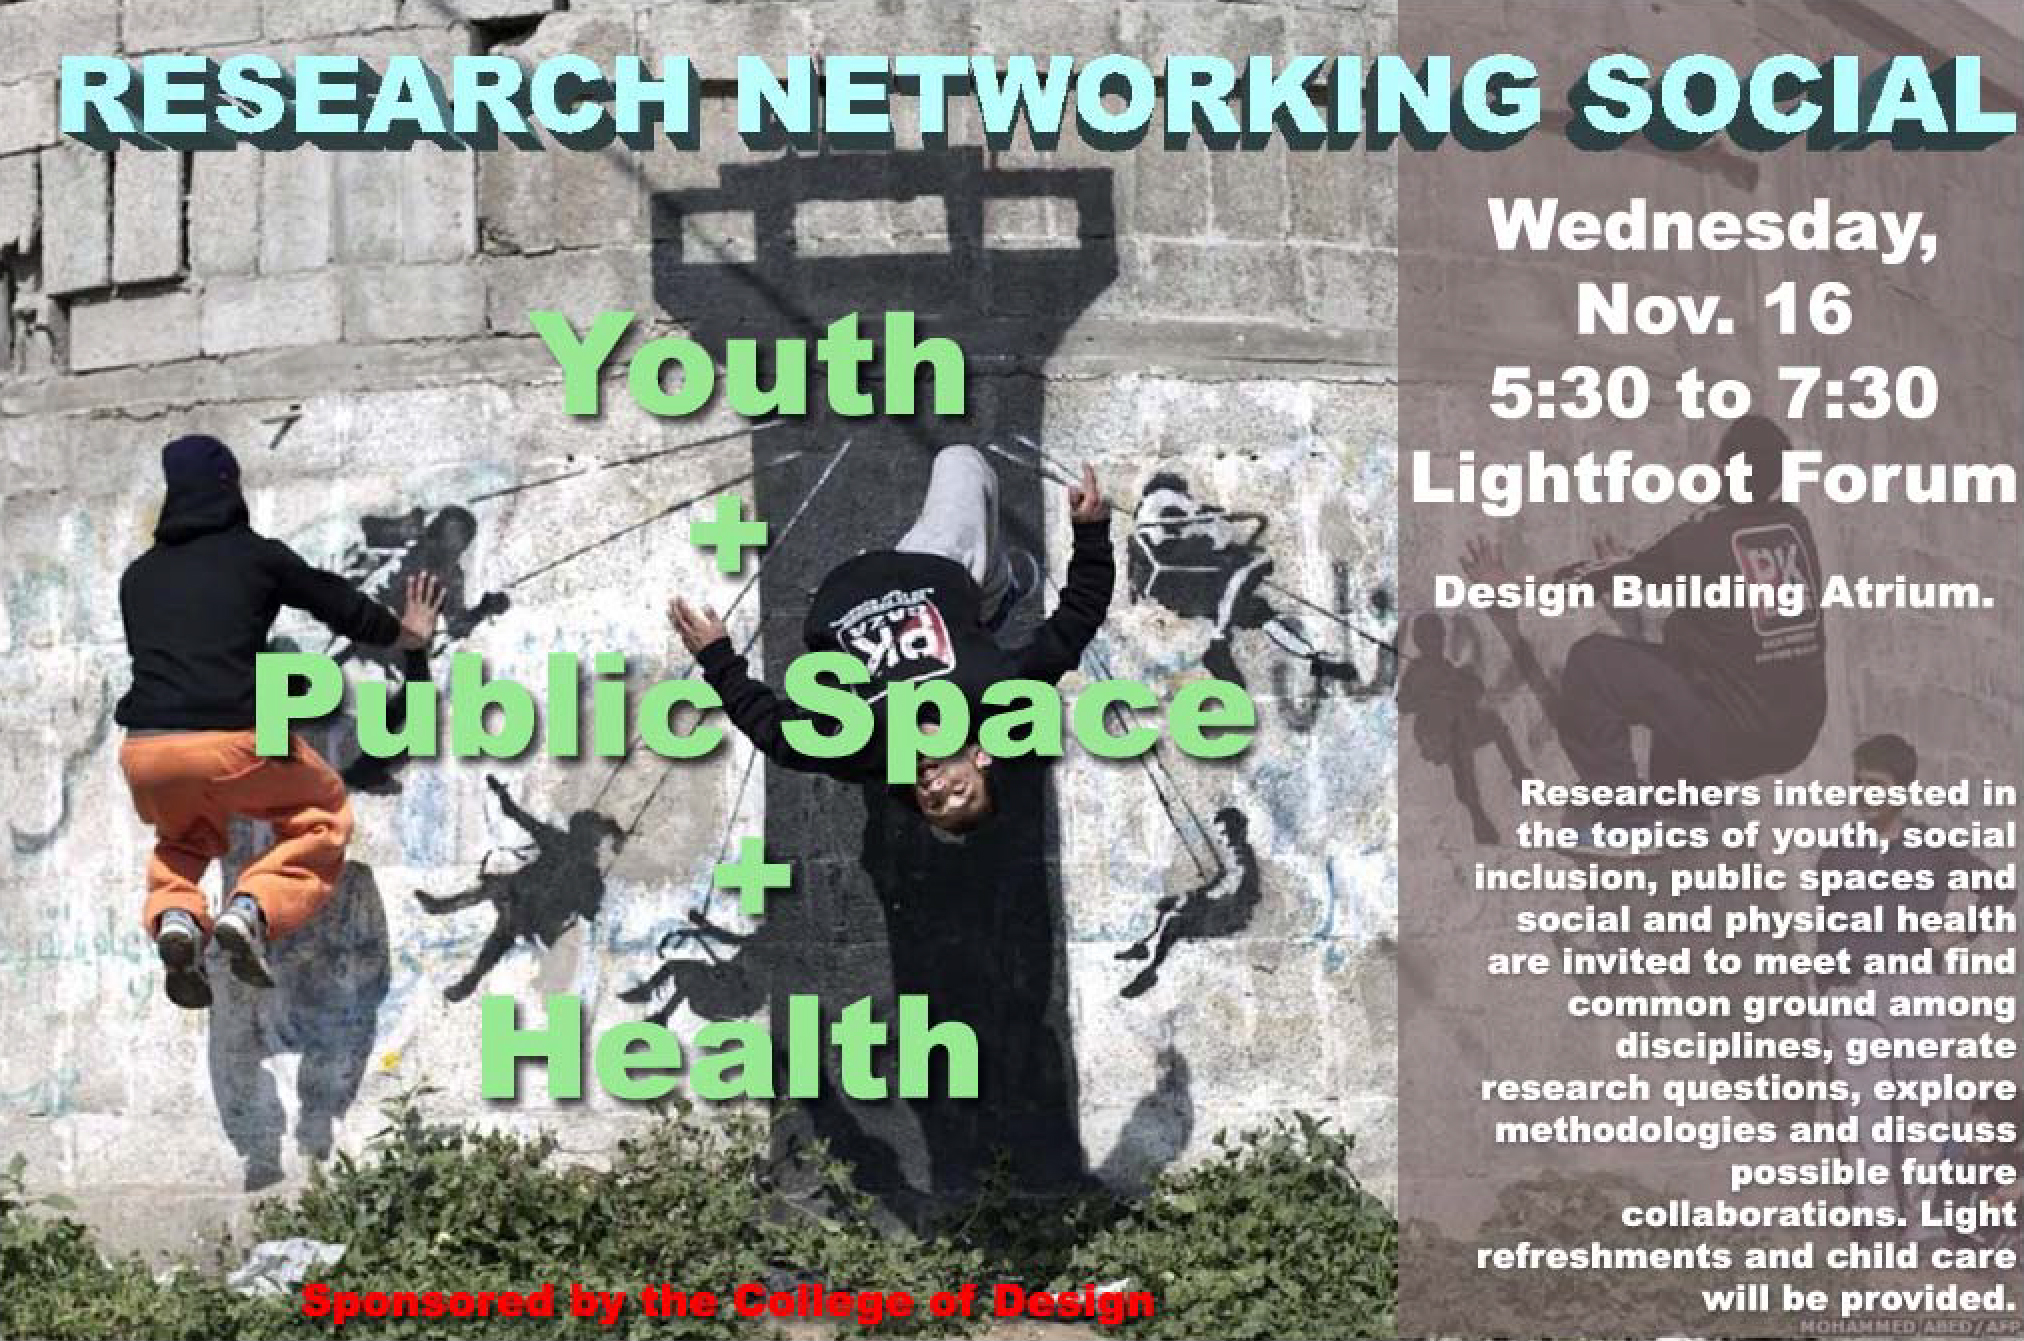 Research Networking Social